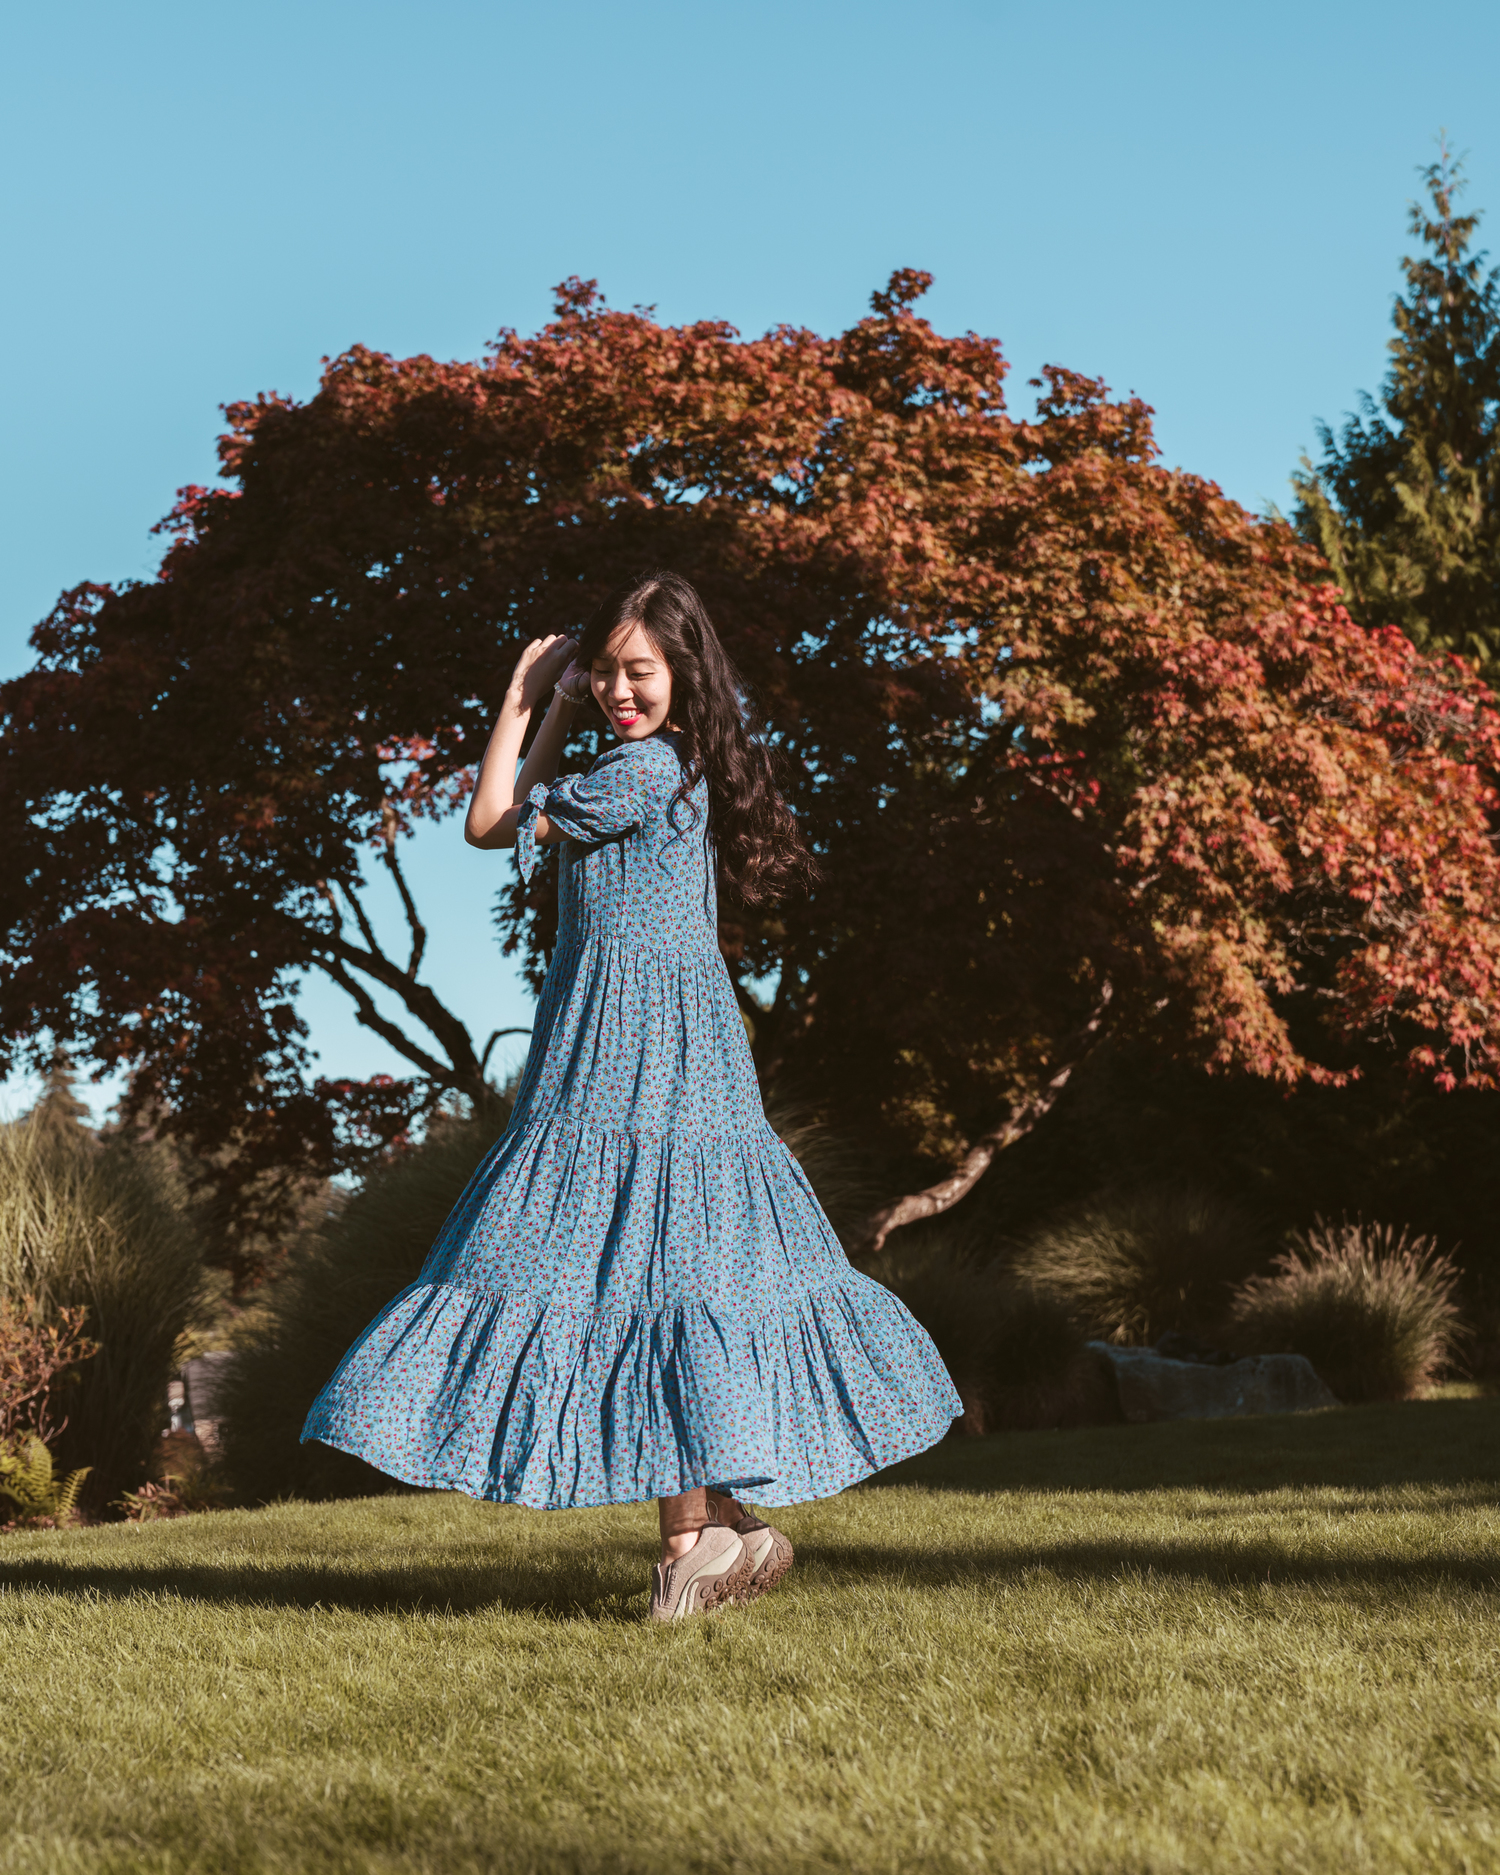 Girl twirling in blue dress in front of autumnal tree